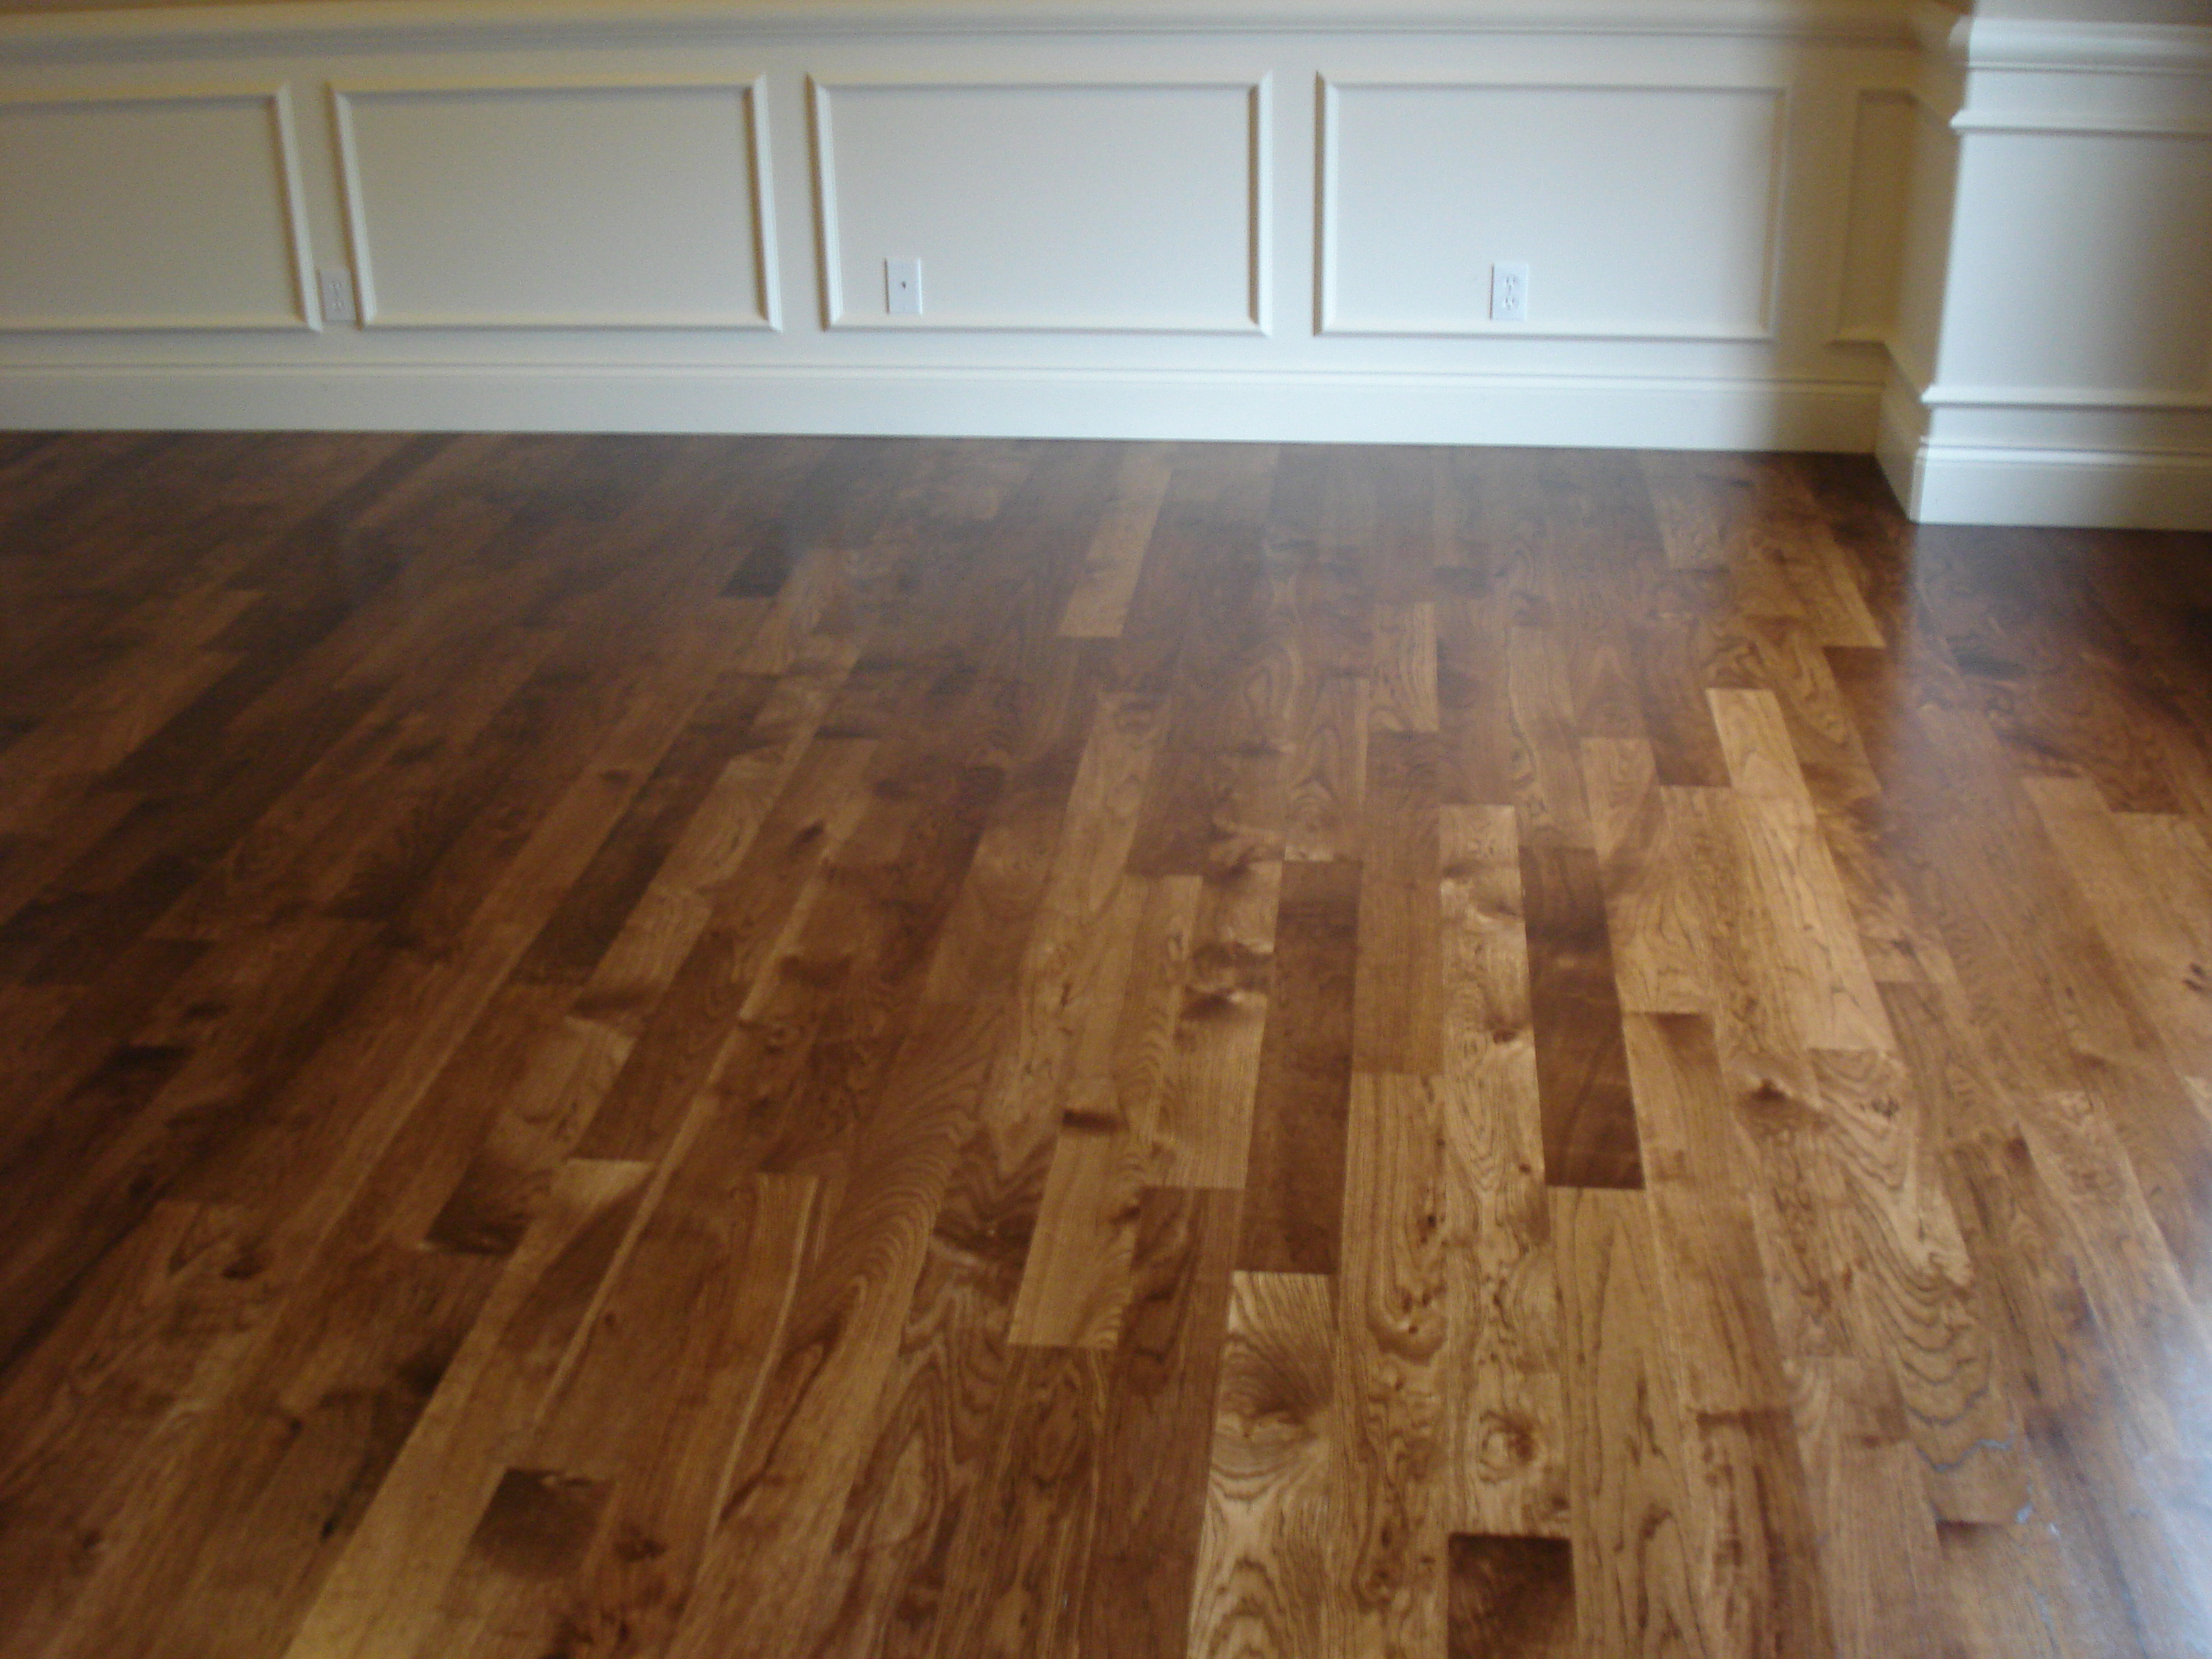 Rooms with Hardwood Floors 3072 x 2304